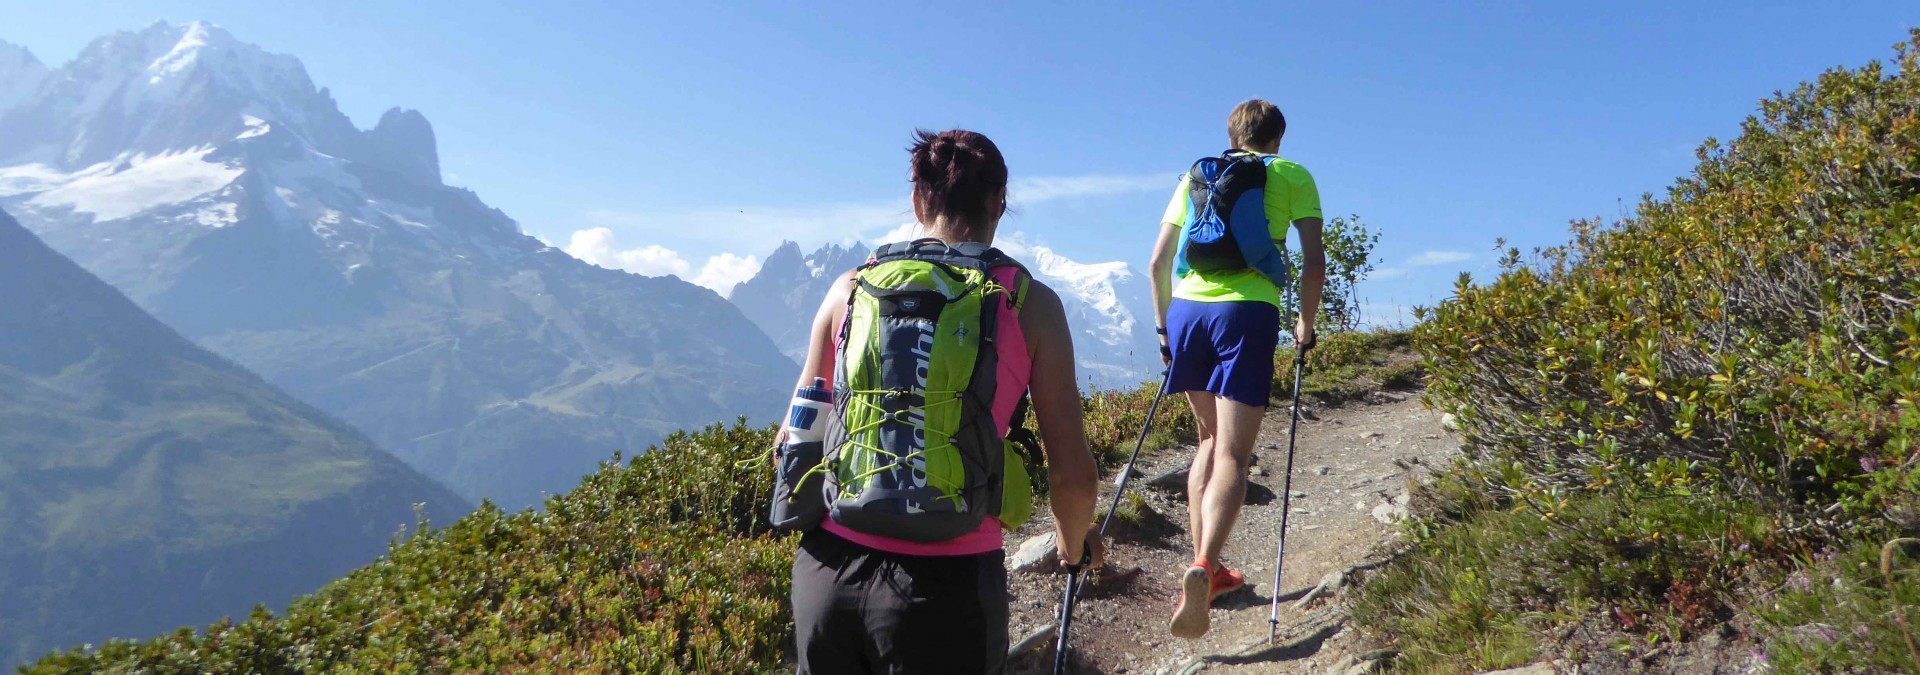 Chamonix Trail Running Camp